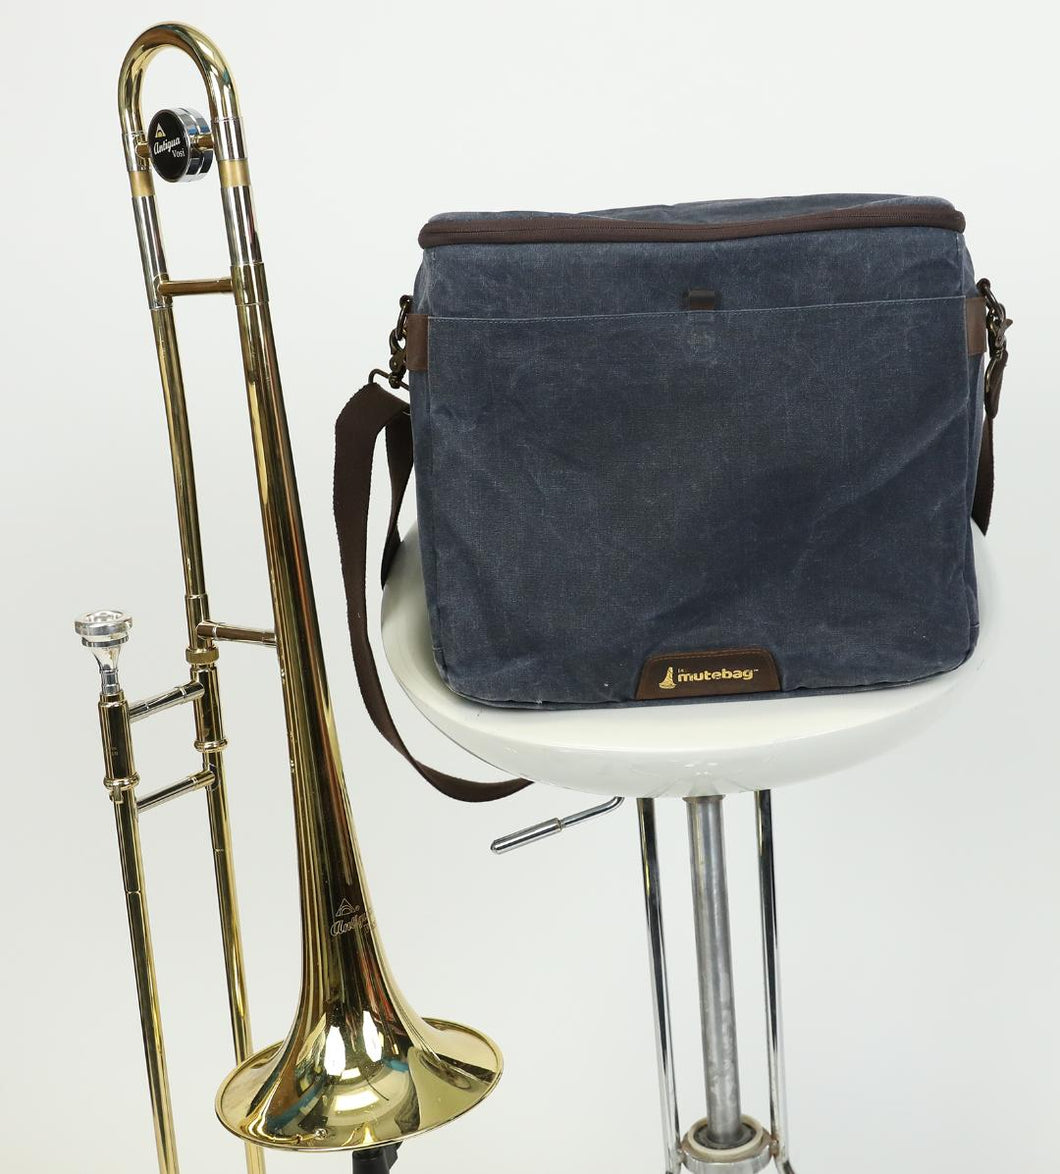 My Mutebag for Trombone